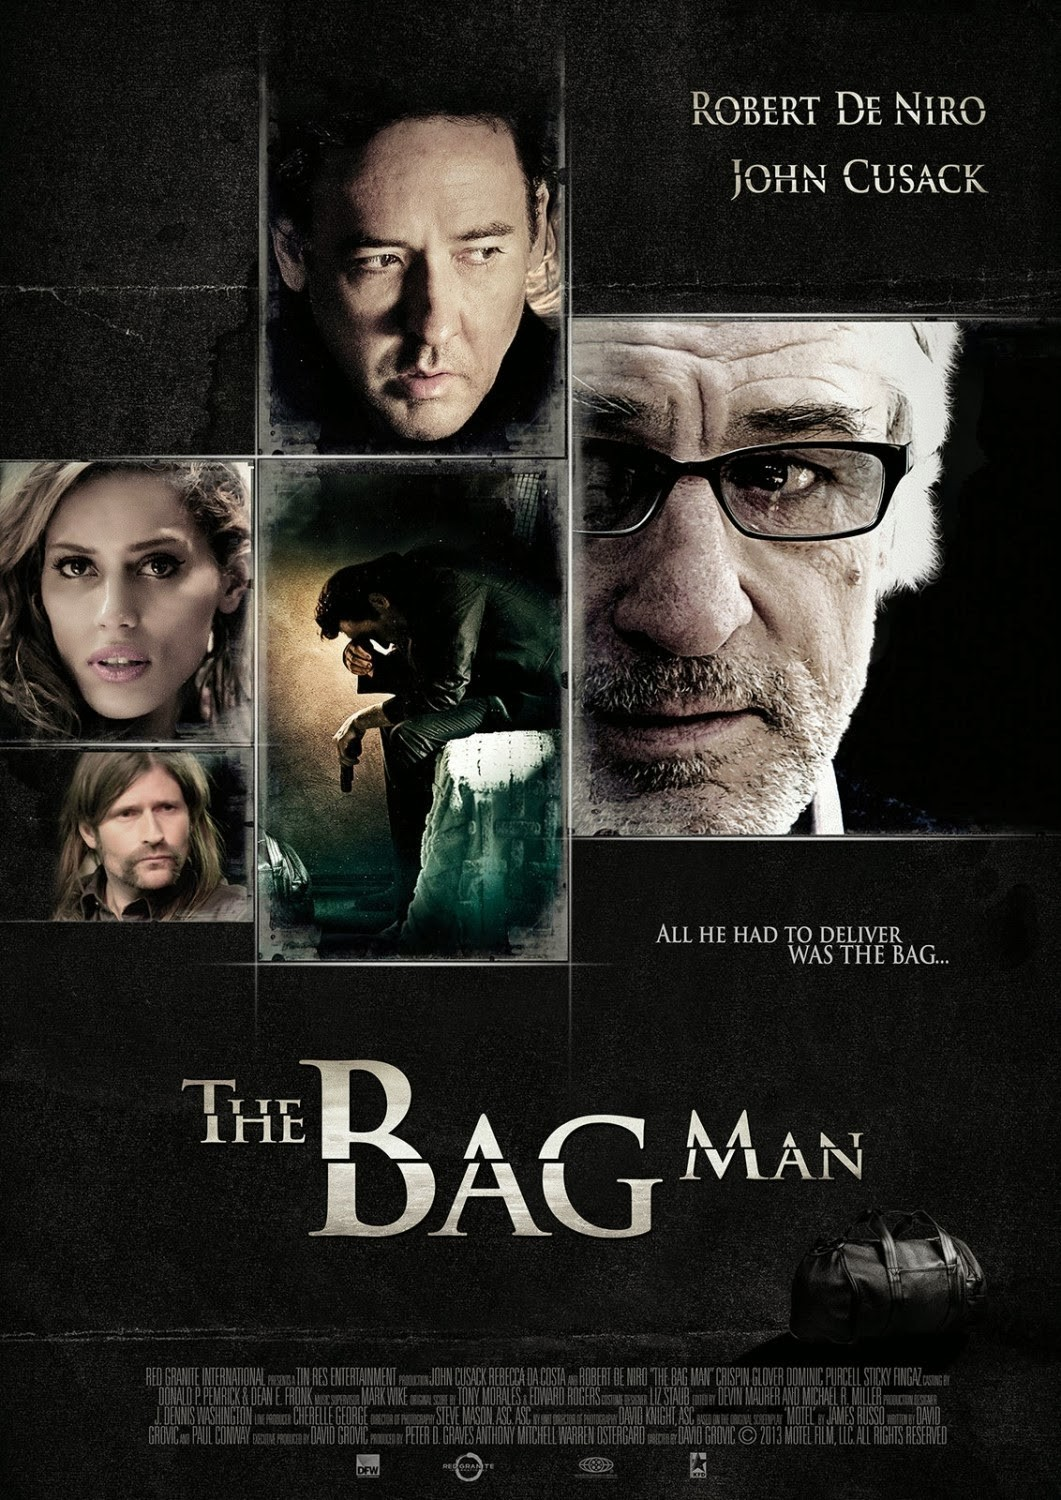 New The Bag Man Movie Poster The Bag Man Movie Poster